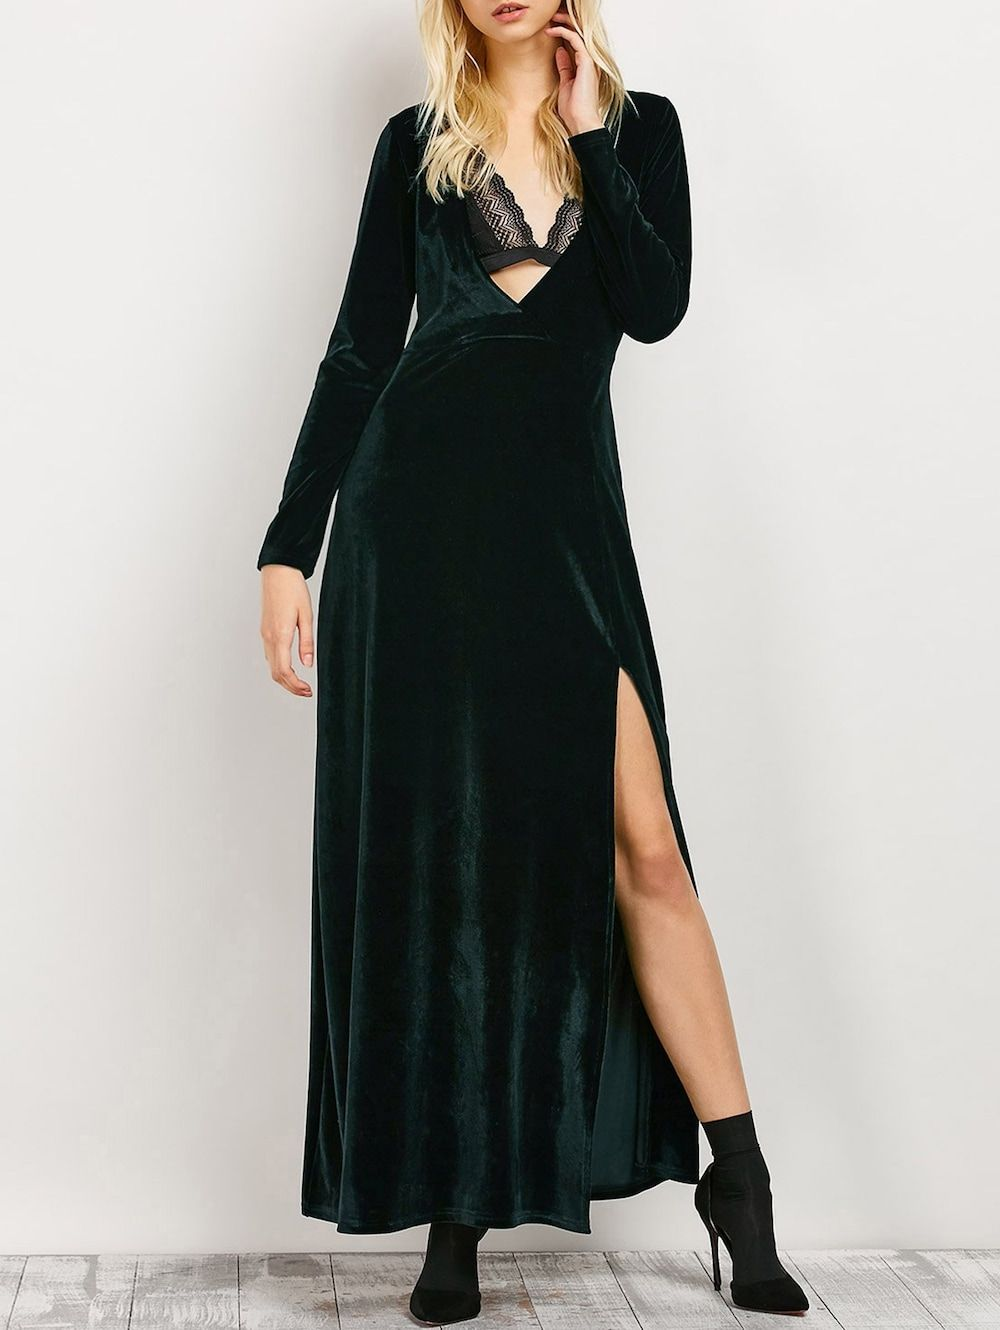 Long sleeve low cut slit maxi evening dress gothic